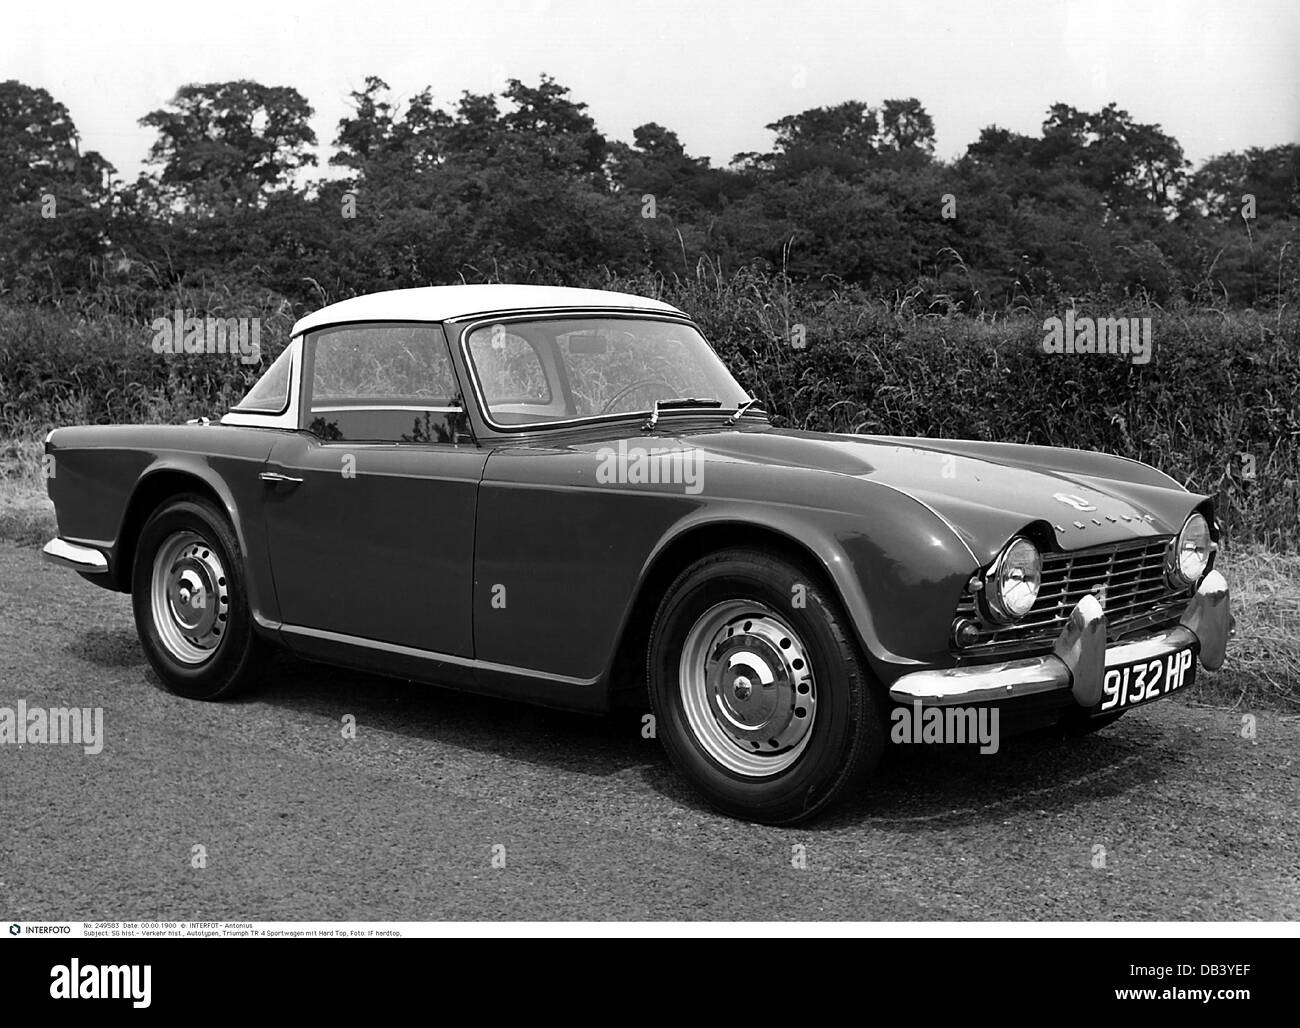 transport / transportation, car, vehicle variants, Triumph TR 4, Additional-Rights-Clearences-NA - Stock Image